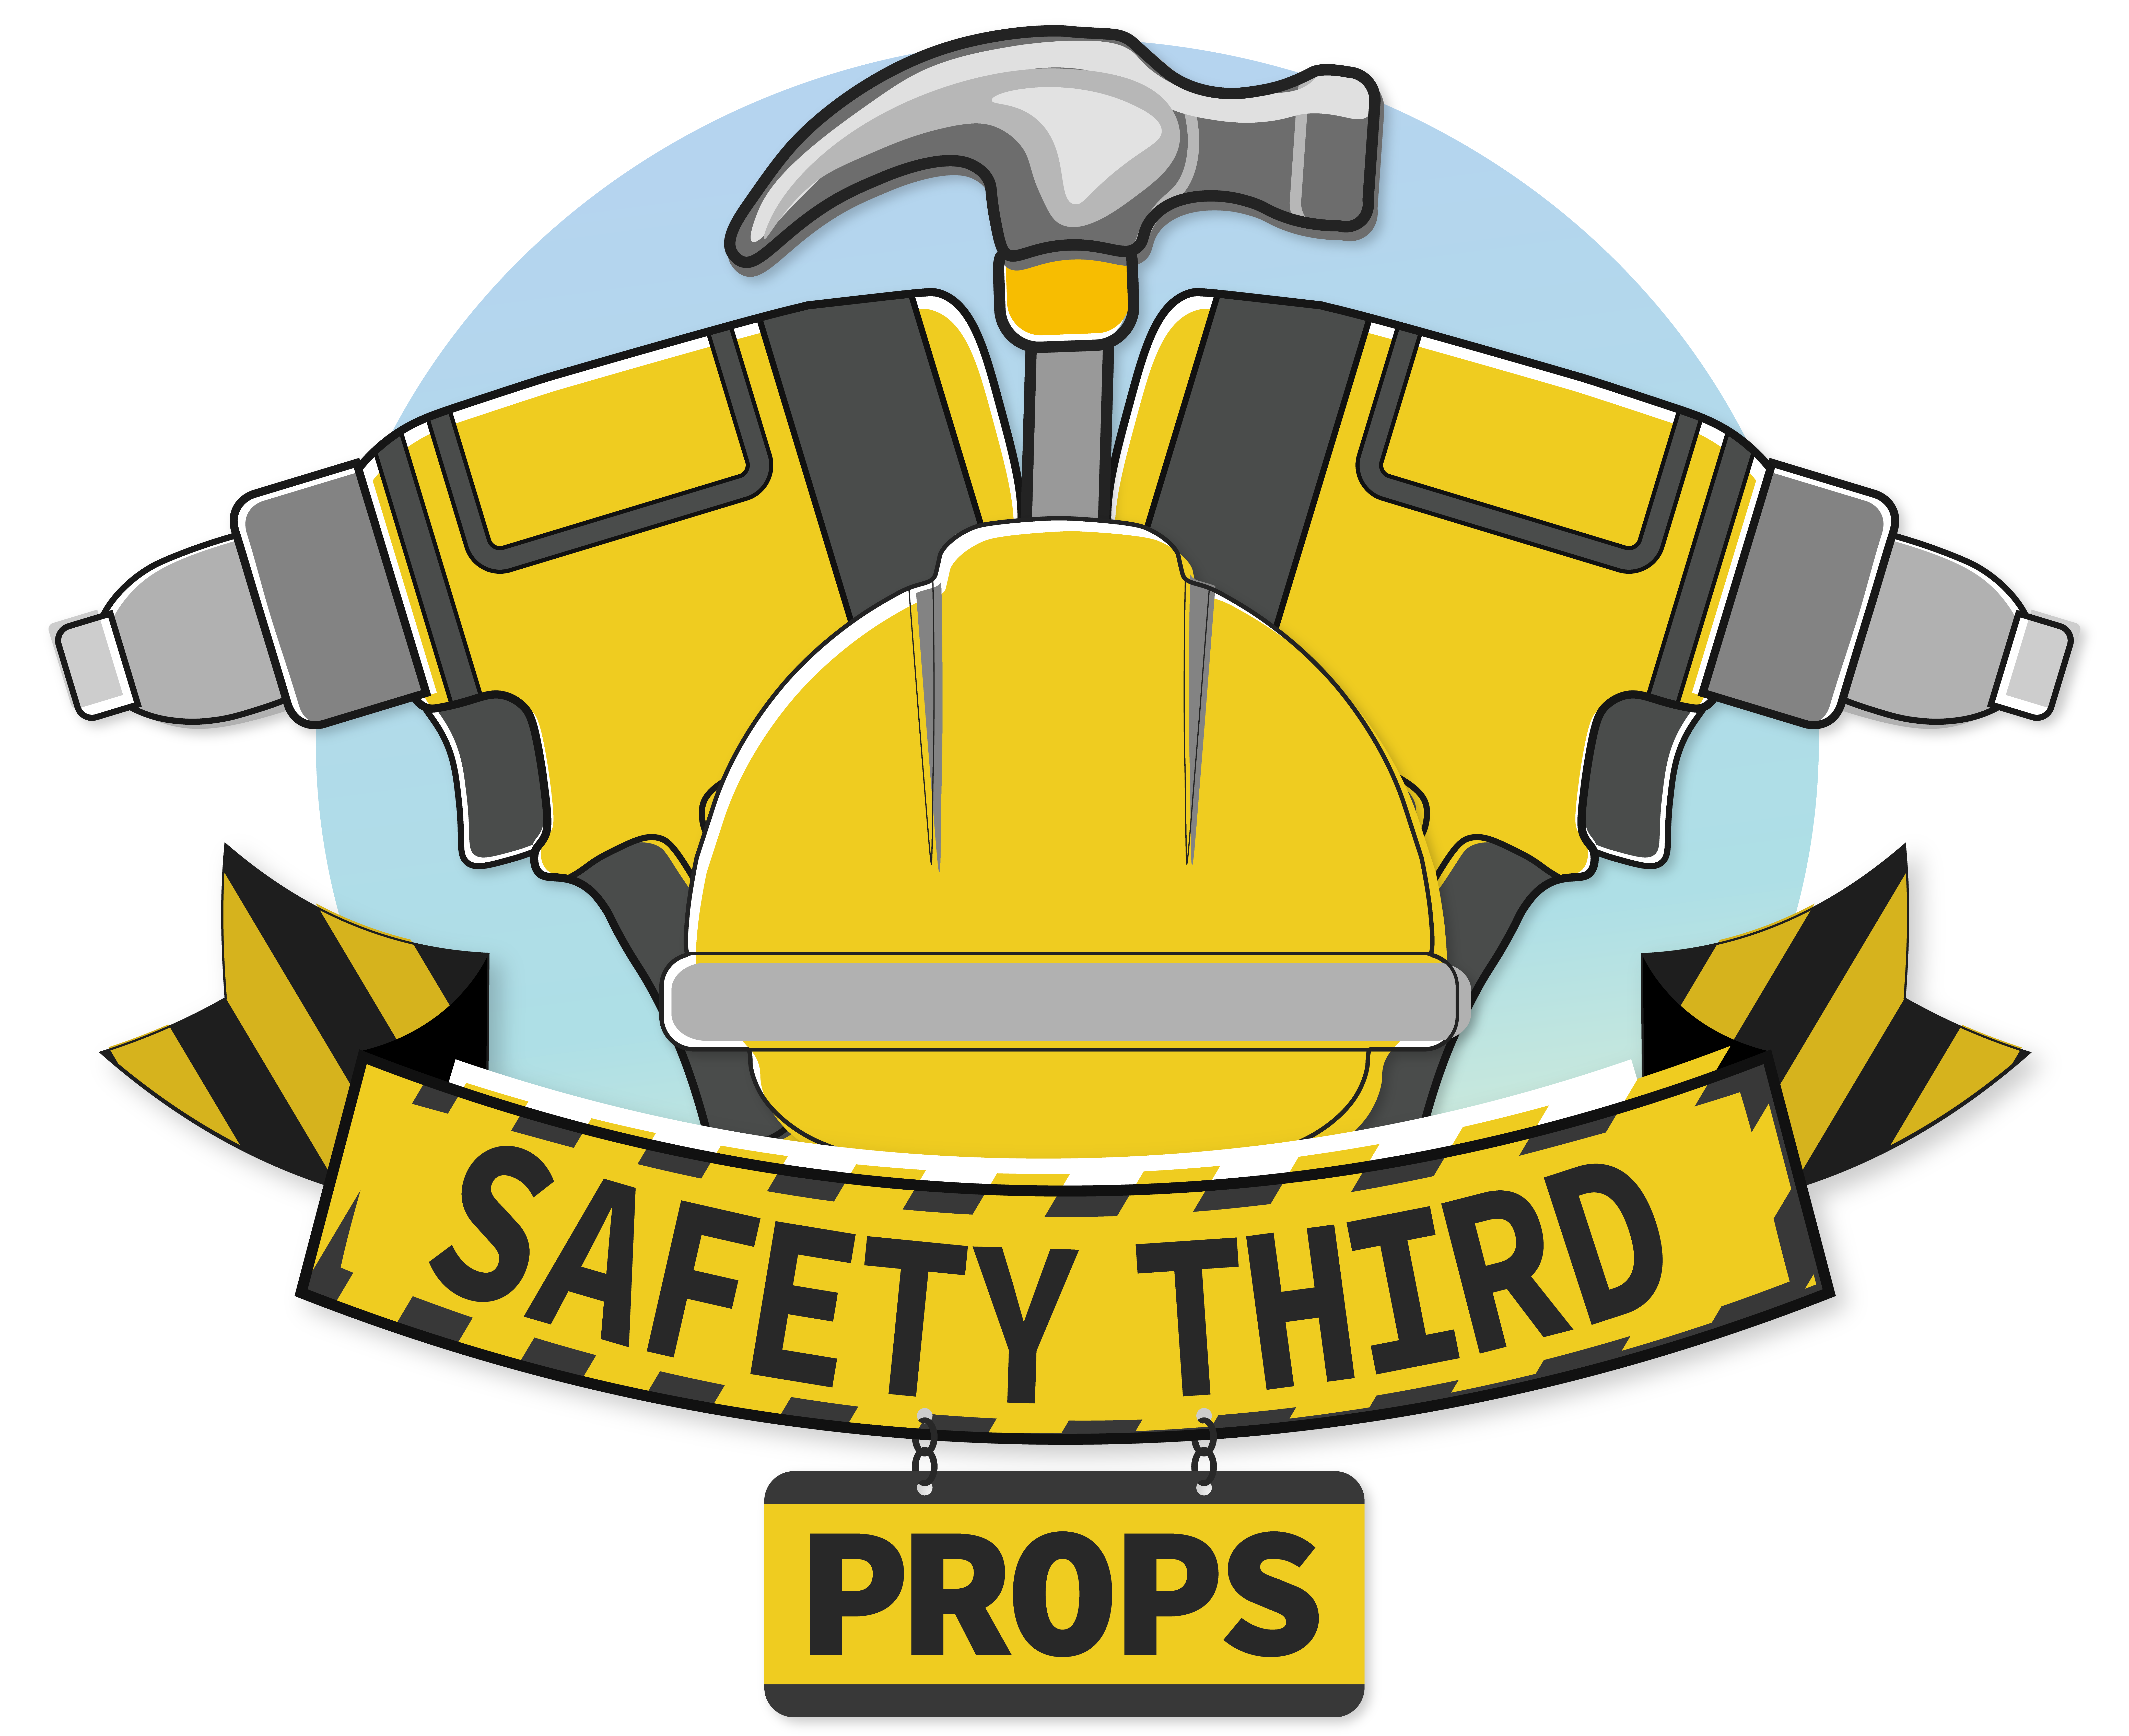 Safety Third Props